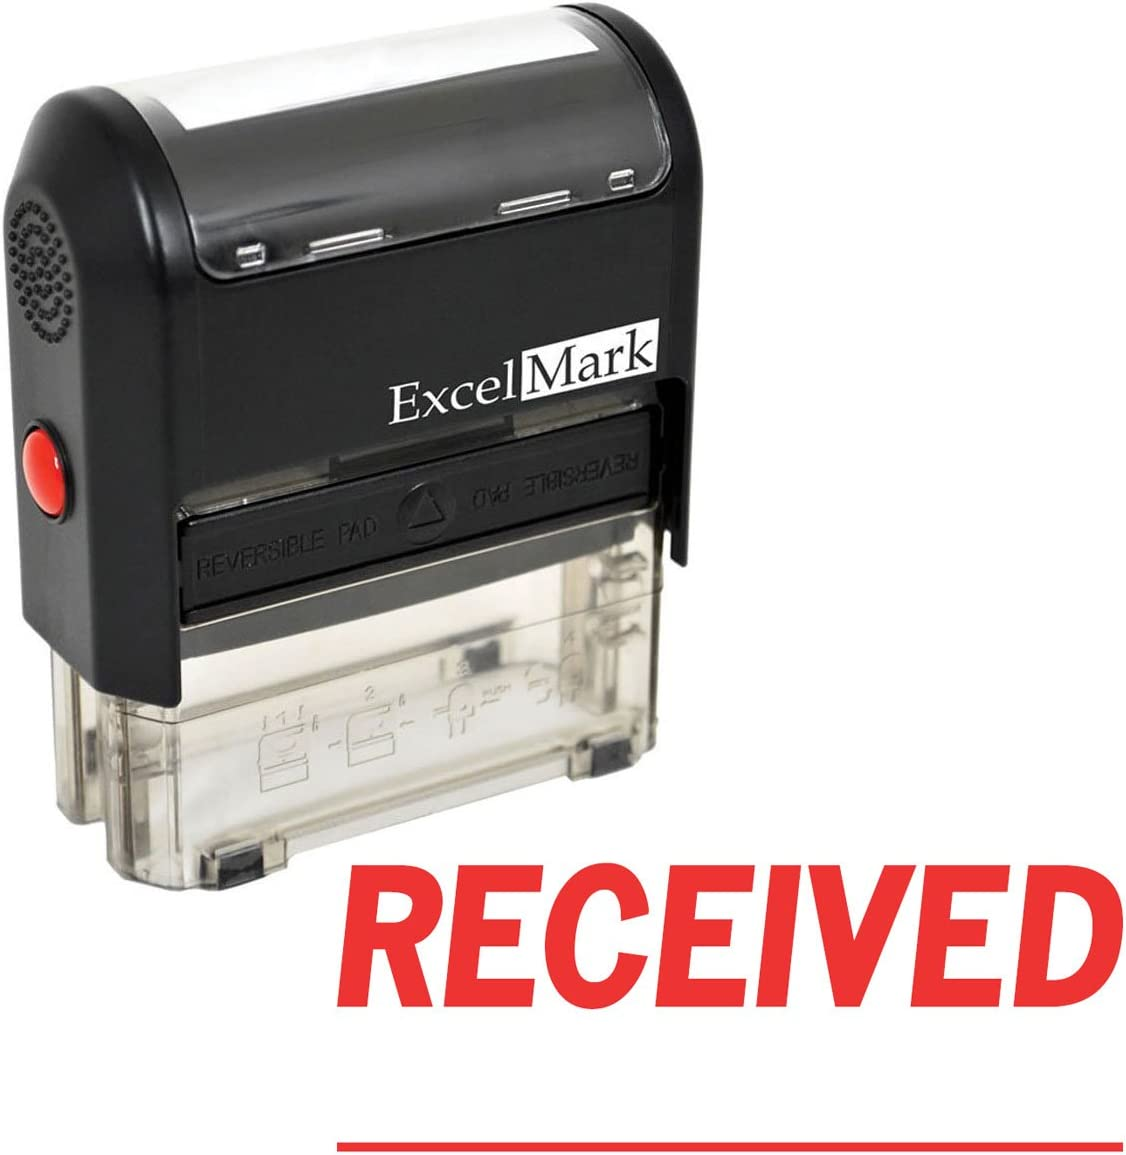 ExcelMark A-1539 Self-Inking Rubber Stamp - Received with Signature Line - Red